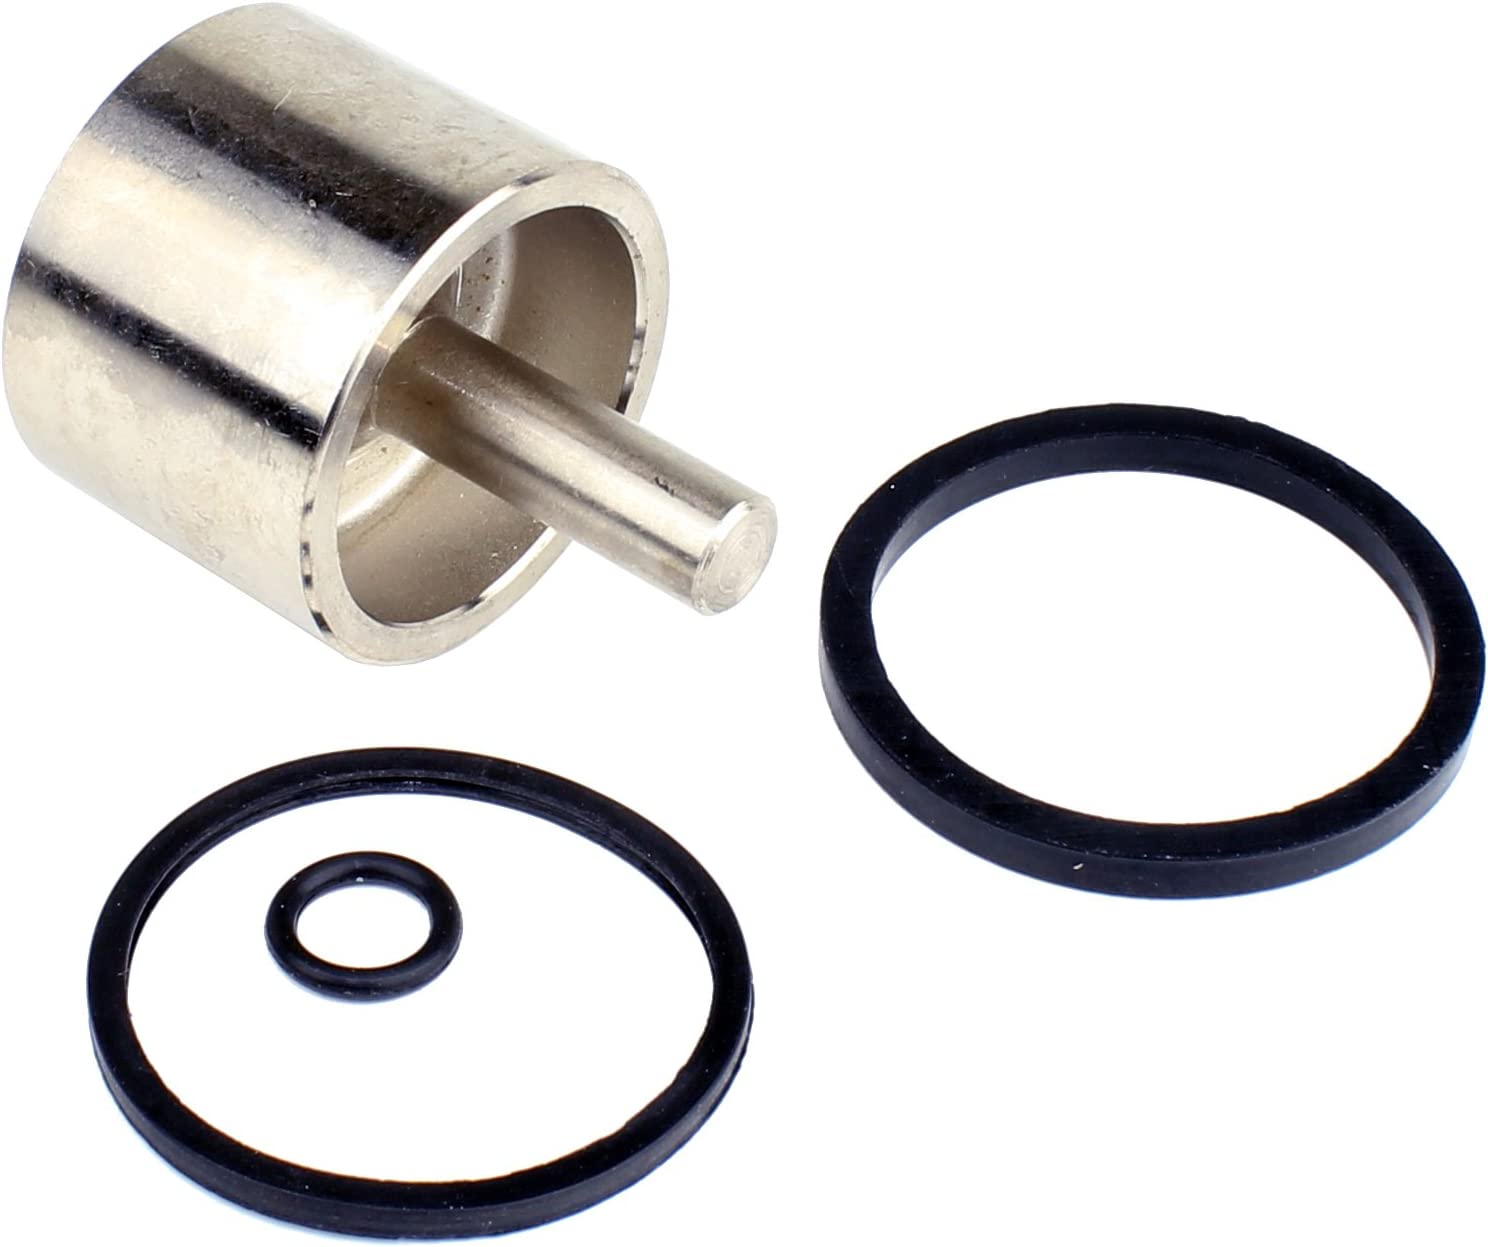 Caltric Max 60% Super special price OFF Rear Brake Caliper Piston Yamaha with 1Uy-W00 Compatible